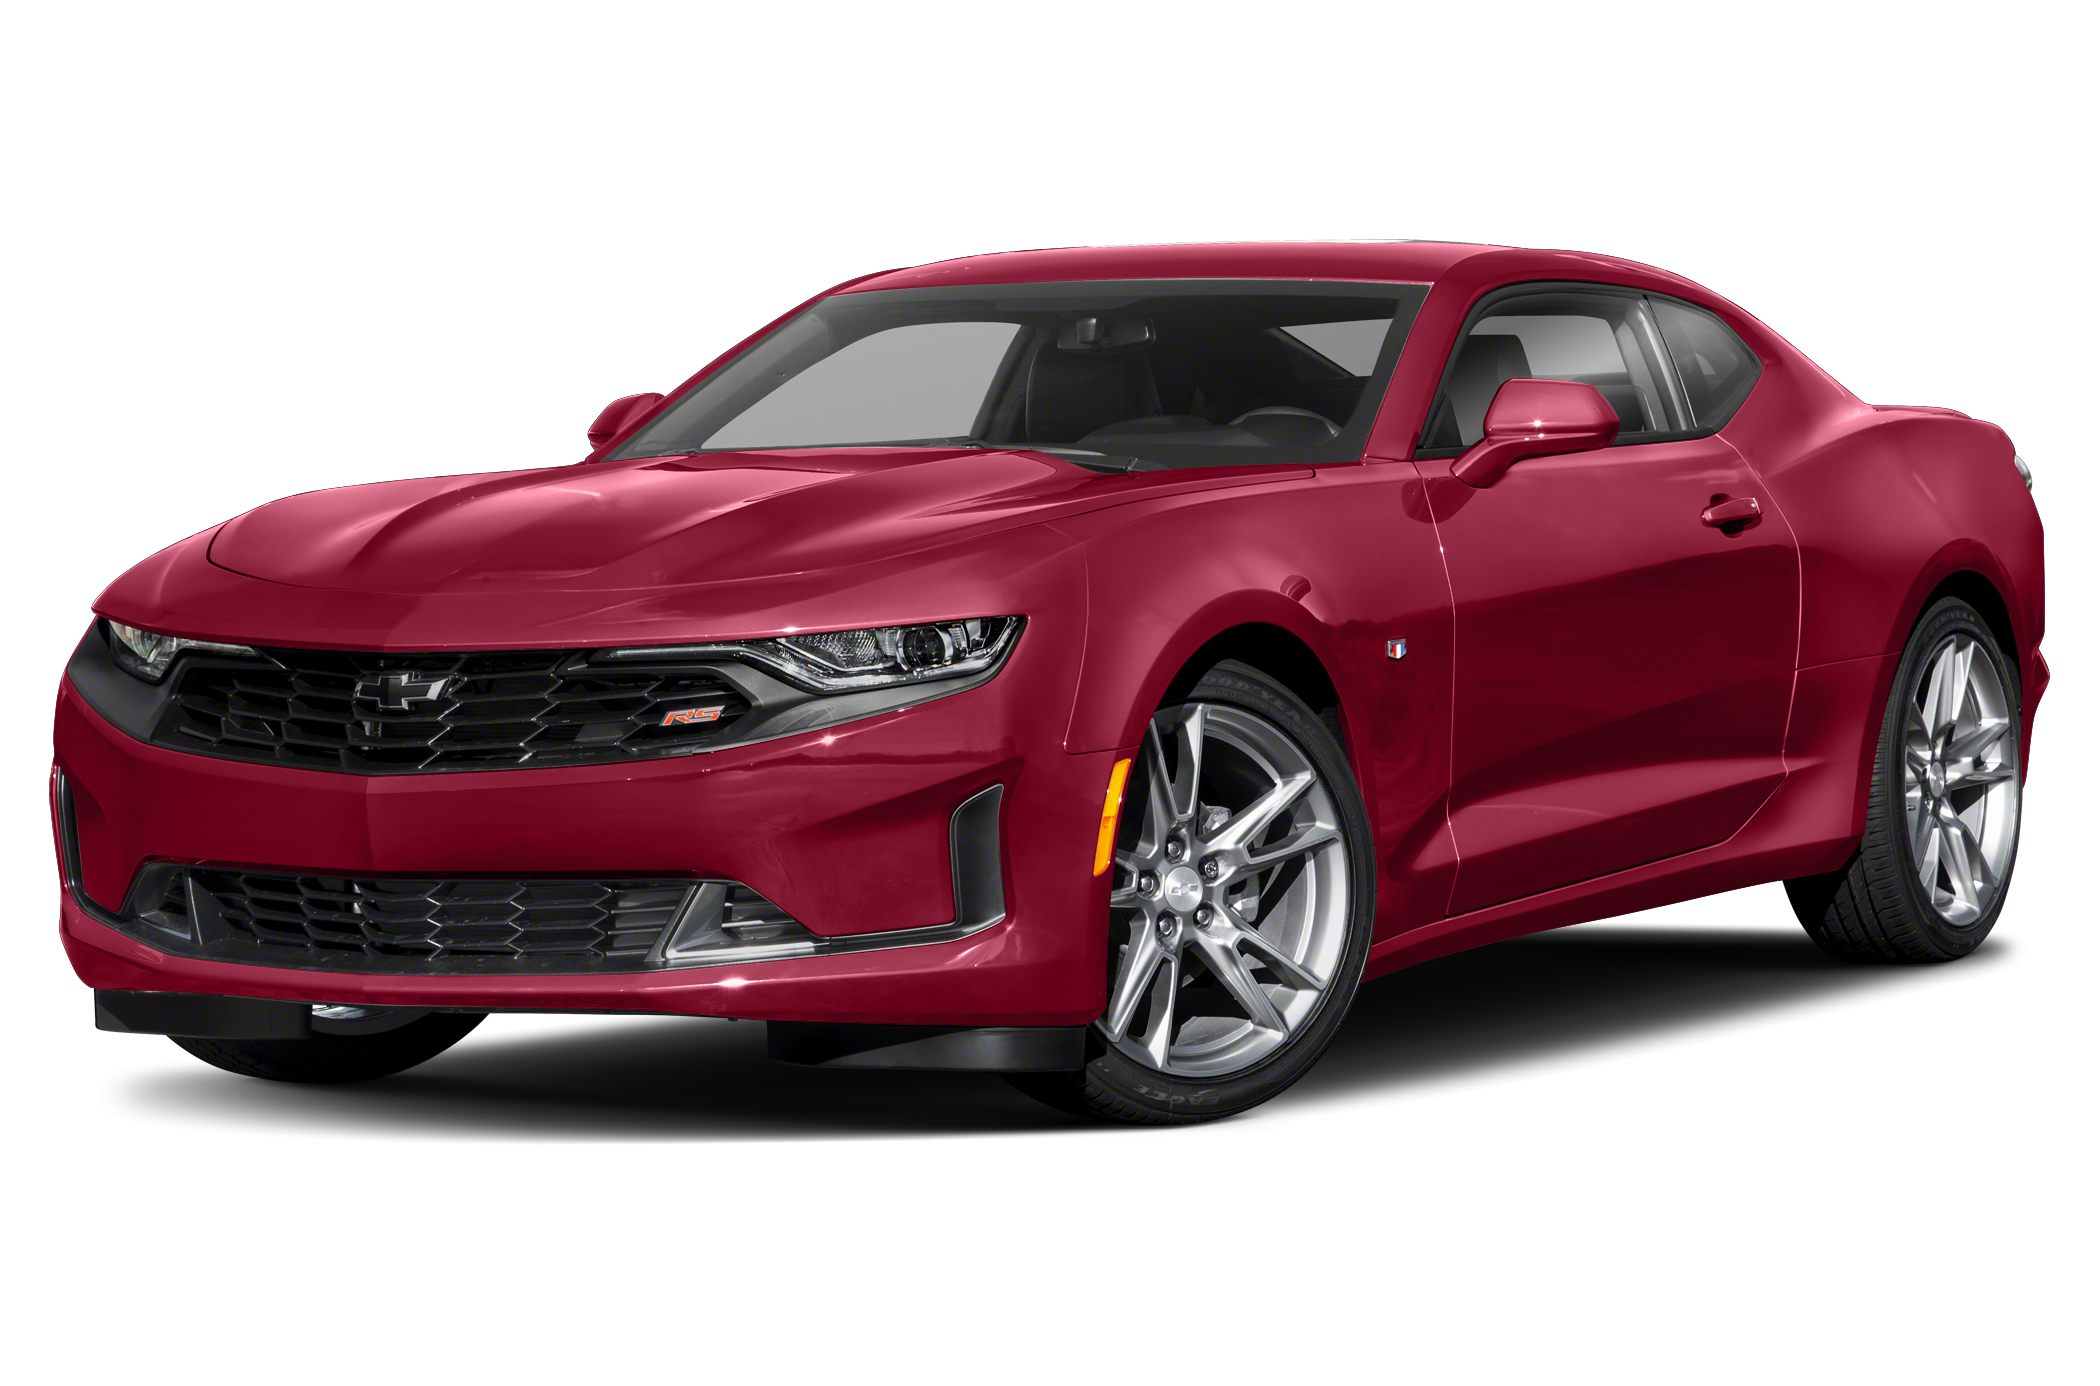 2019 Chevrolet Camaro 2SS 2dr Coupe